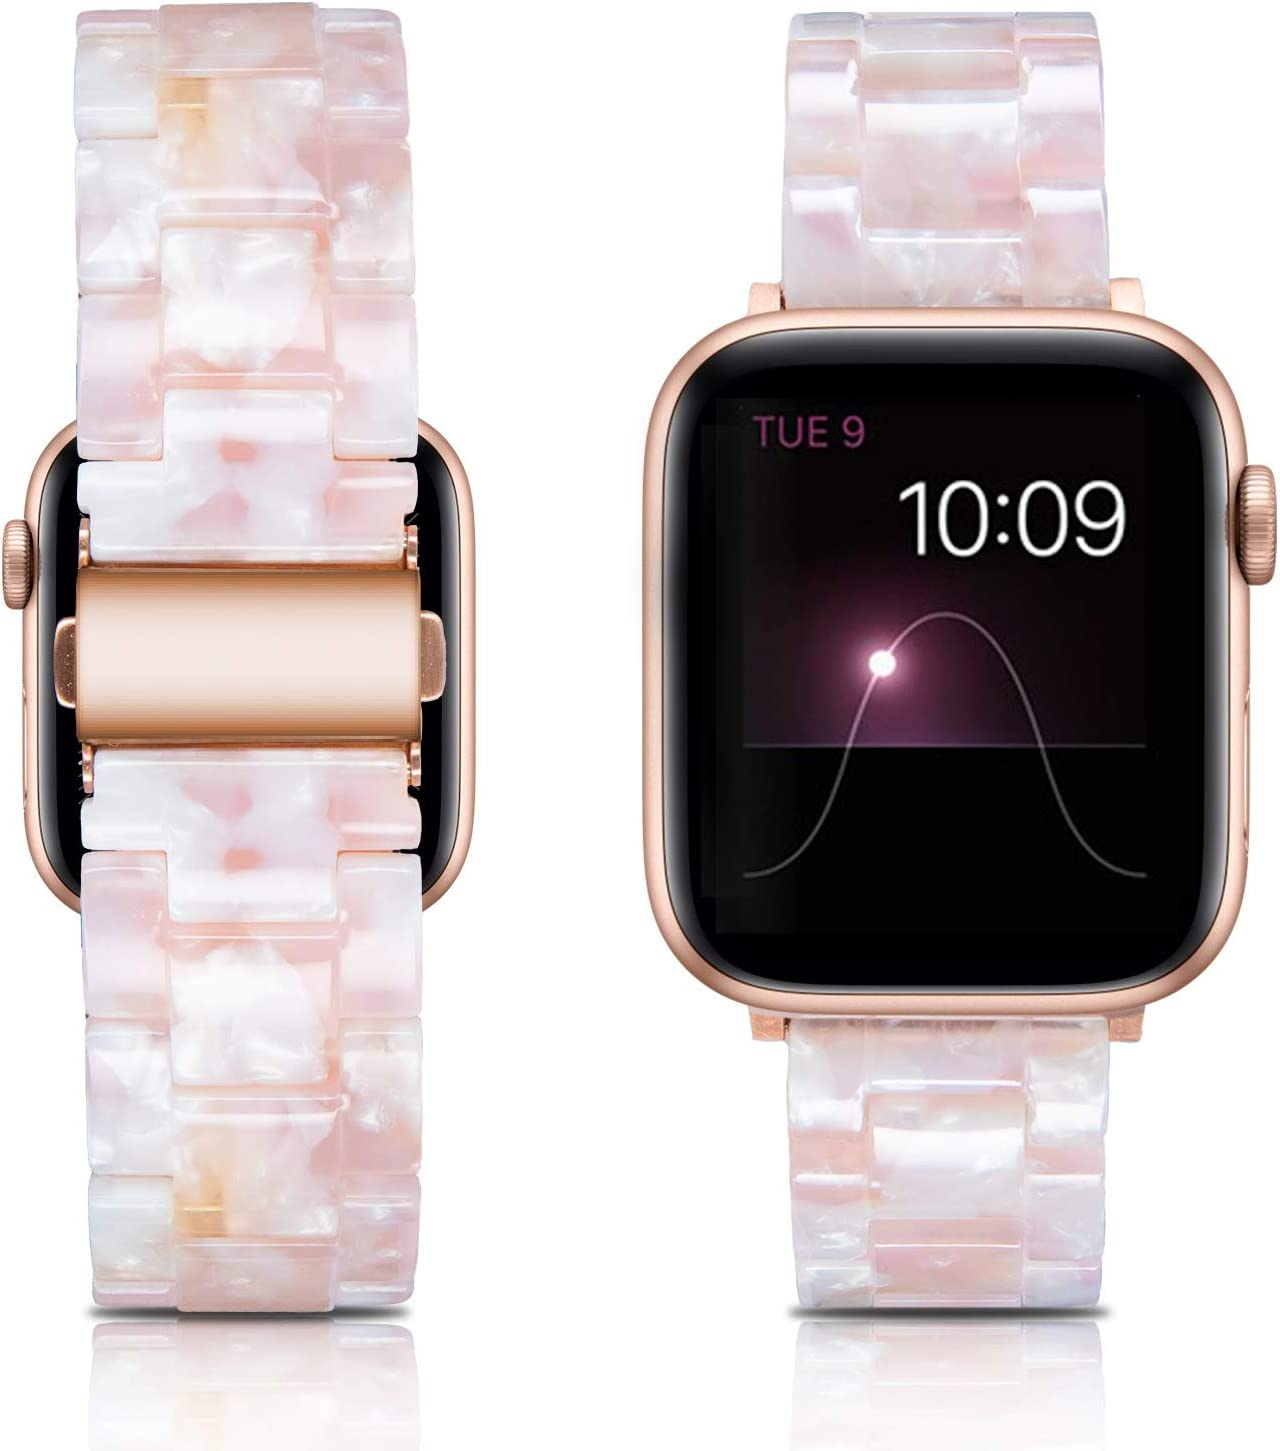 LINXUXIE Compatible with Apple Watch Band 38mm 40mm,Resin Replacement Wristband Strap with Stainless Steel Buckle for iWatch Series SE/6/5/4/3/2/1 (Pink Flower, 38/40mm)